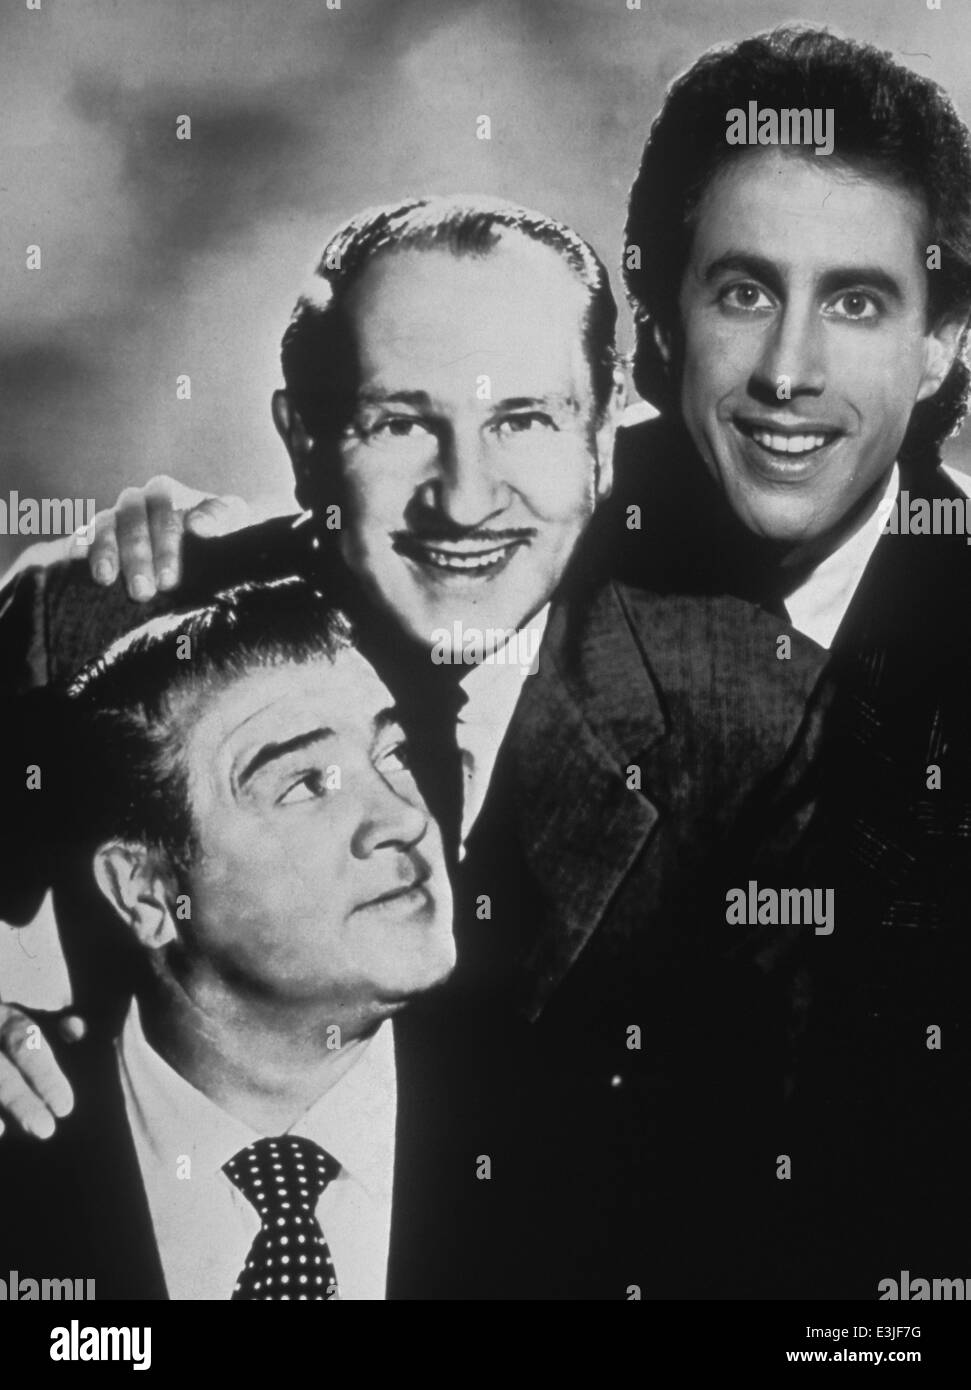 abbott and costello meet jerry seinfeld - Stock Image